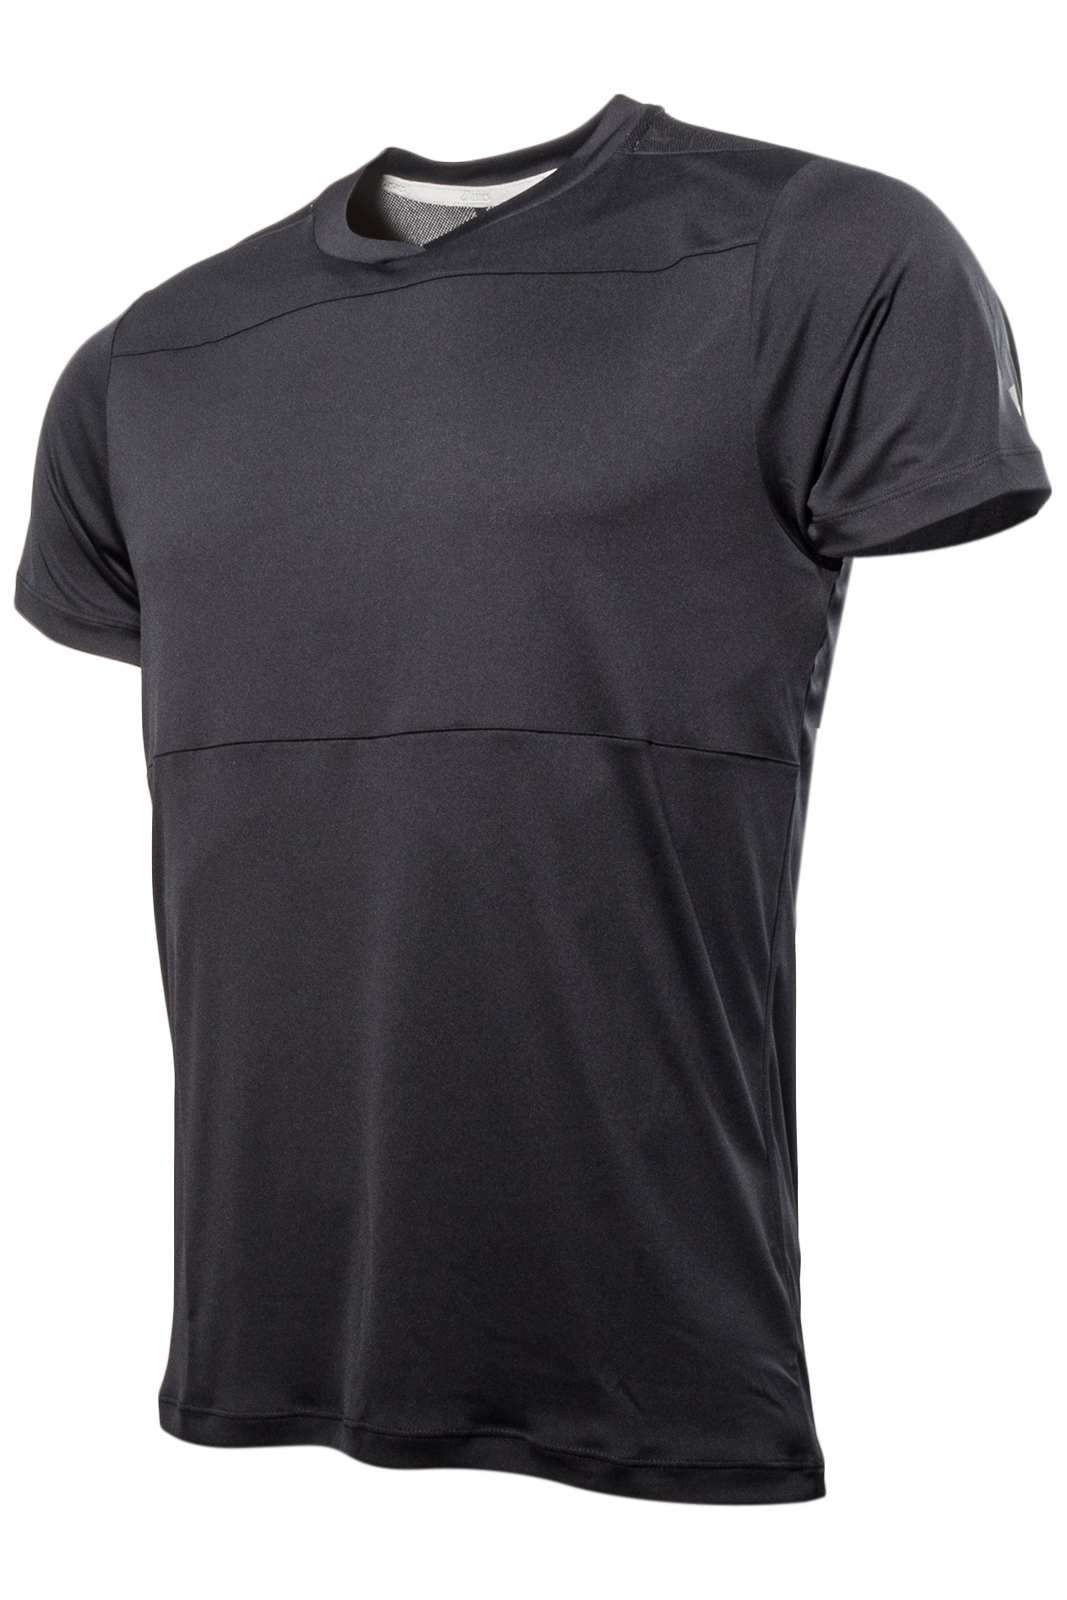 Available from 10.11  t-shirt for men 145339-0904